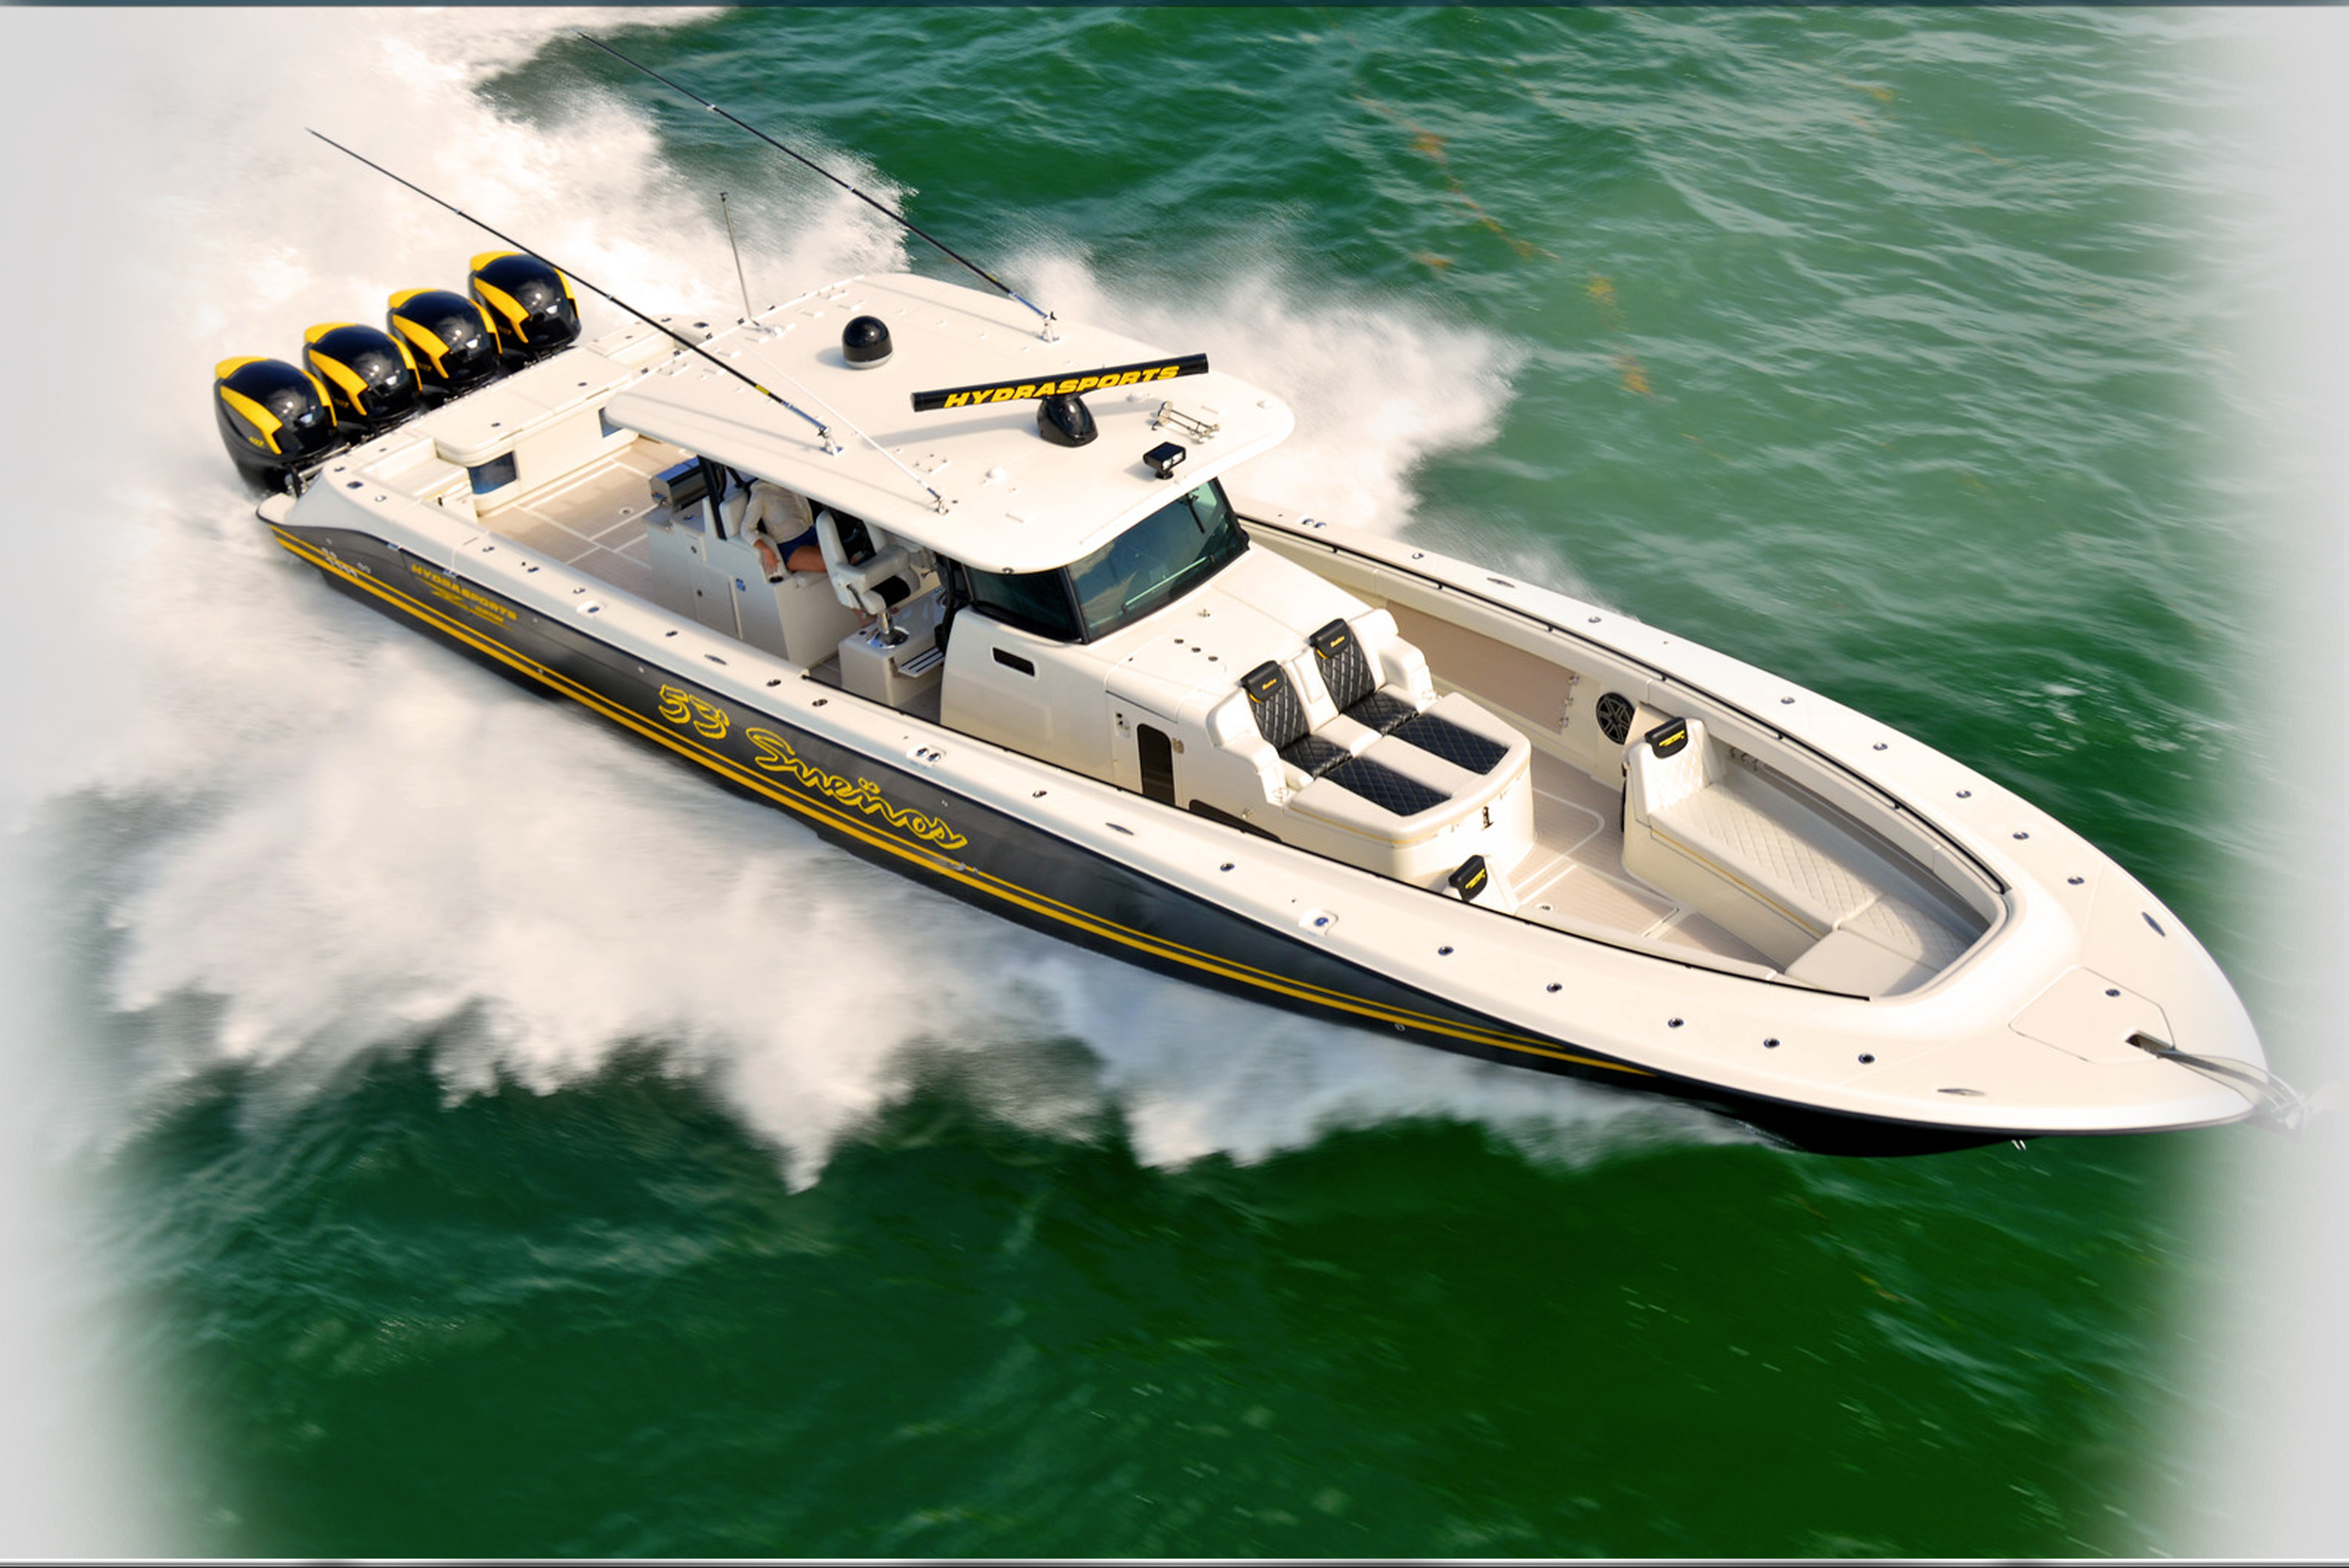 Speed Boat Insanity at Fort Lauderdale: More Powerful Outboards, and More of Them